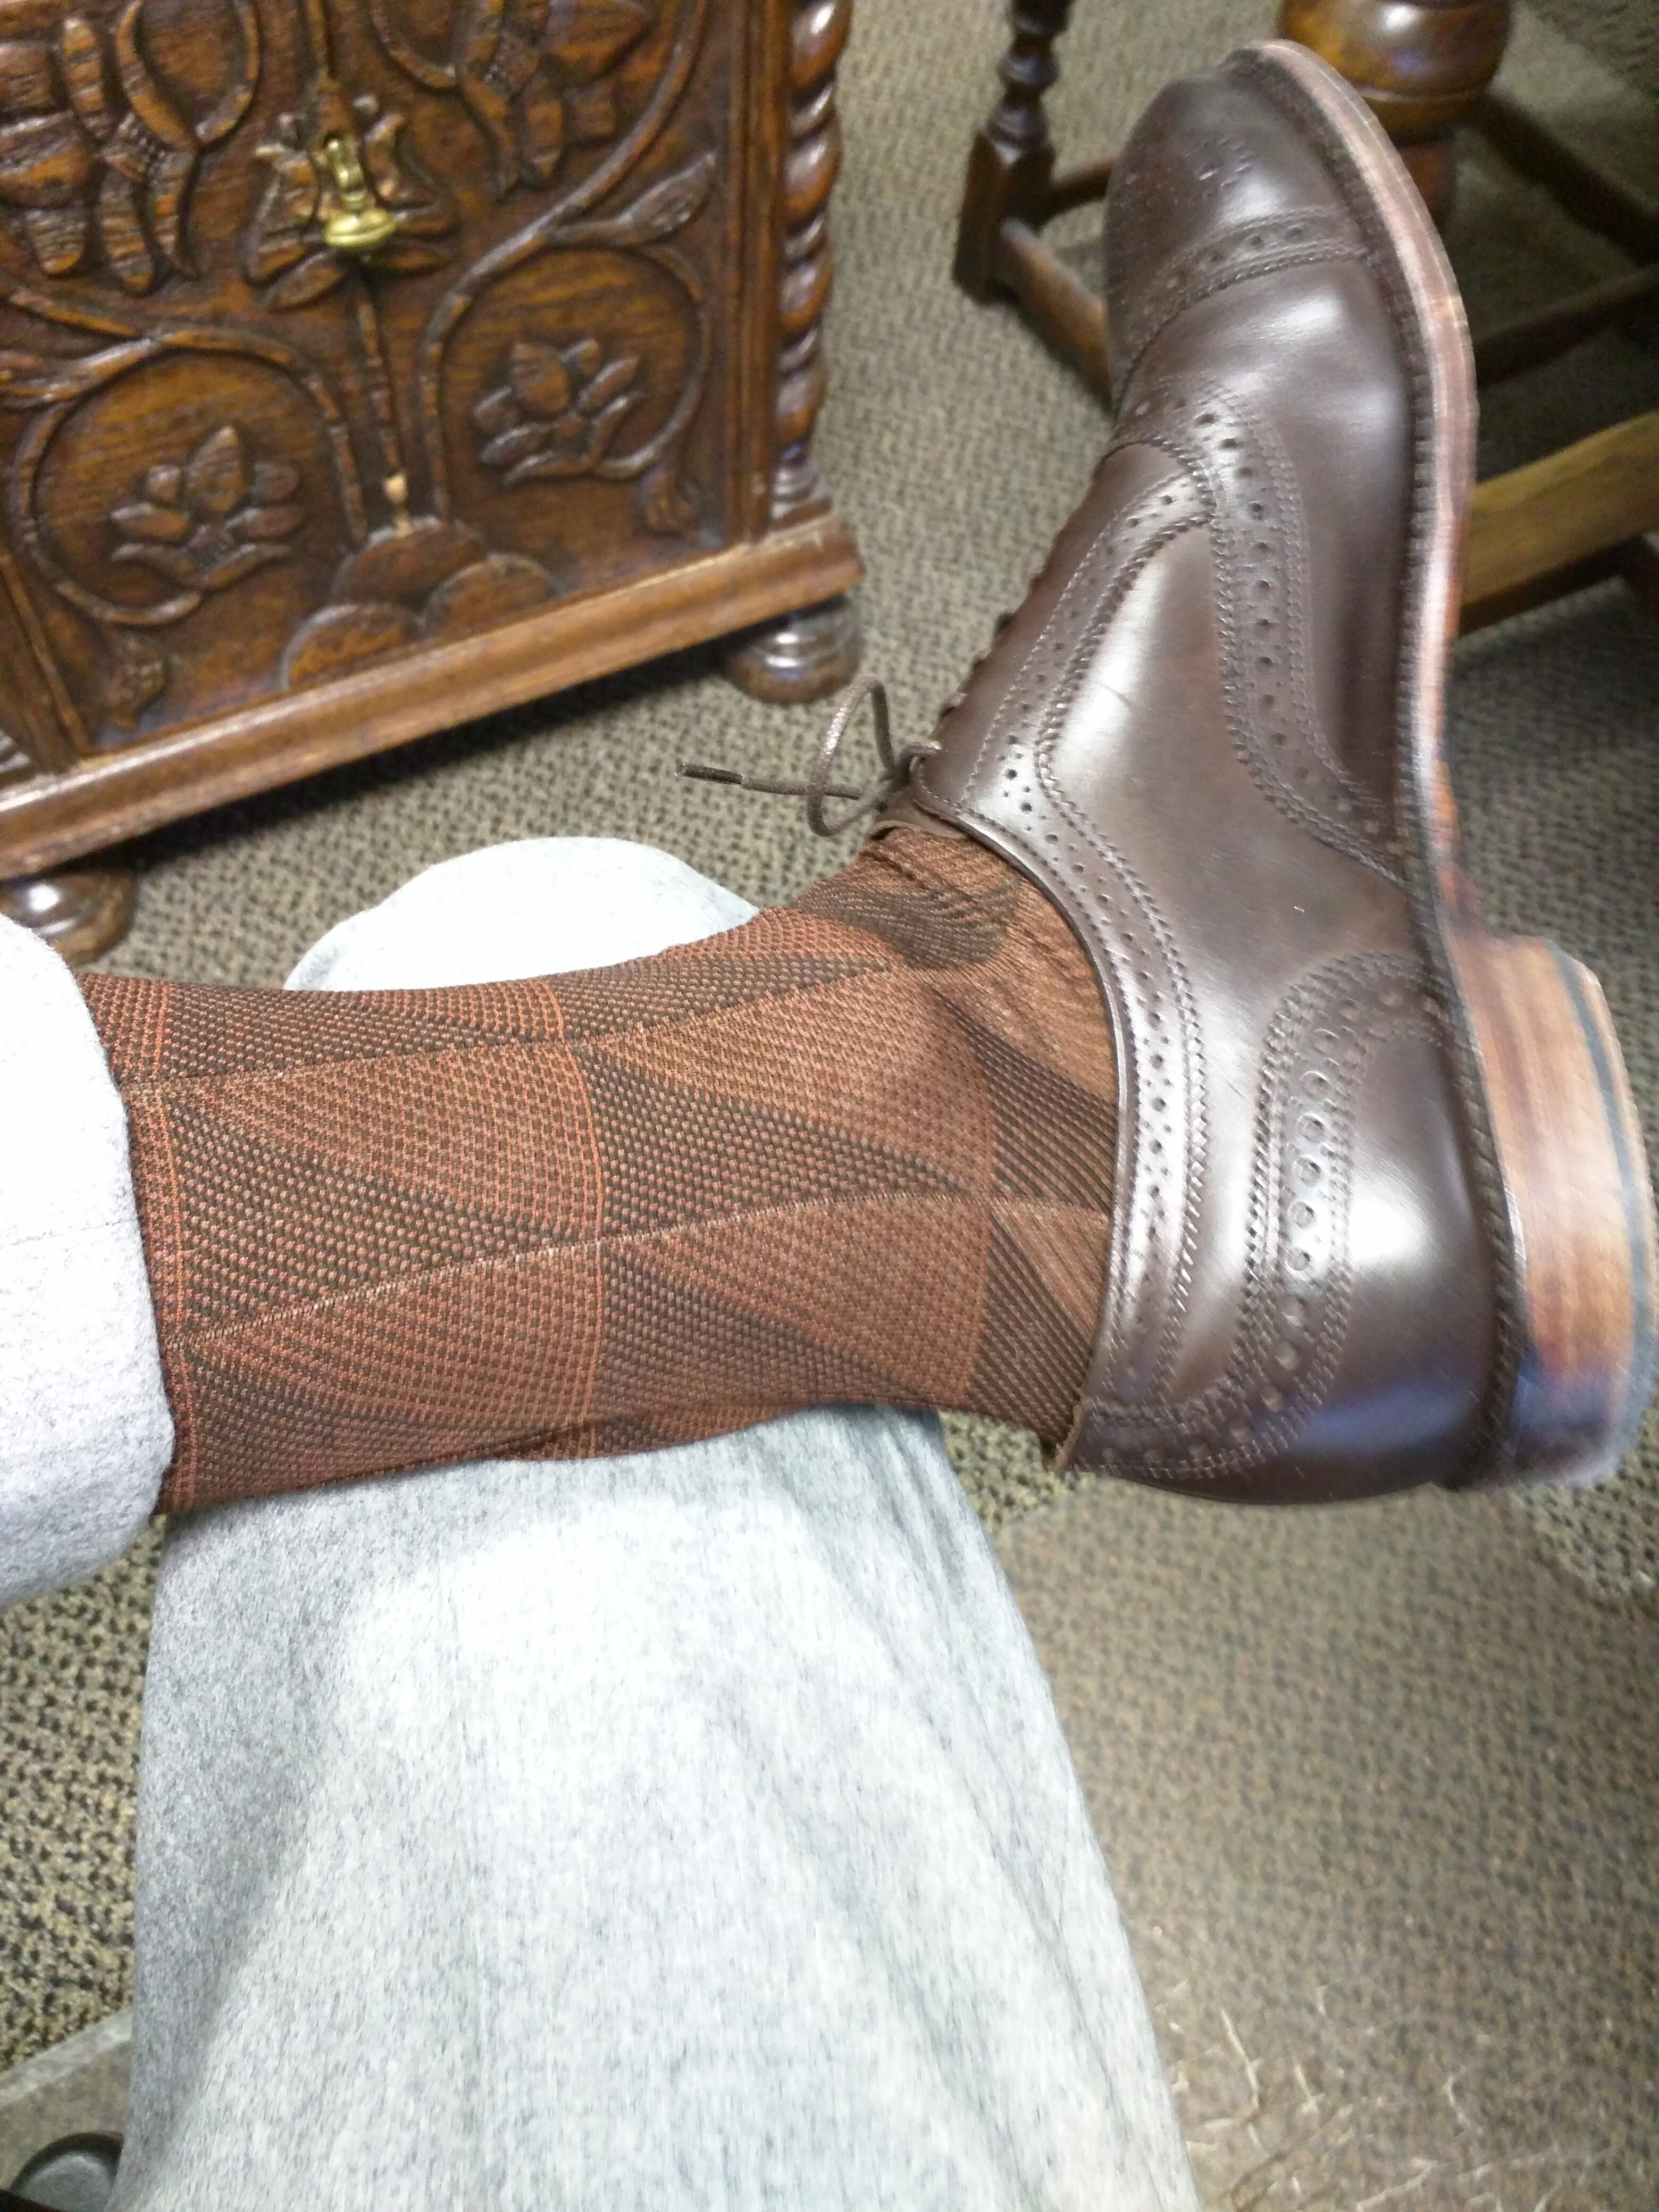 otterhound's photos in Rock Your Socks- show your sock, shoe & pant combos